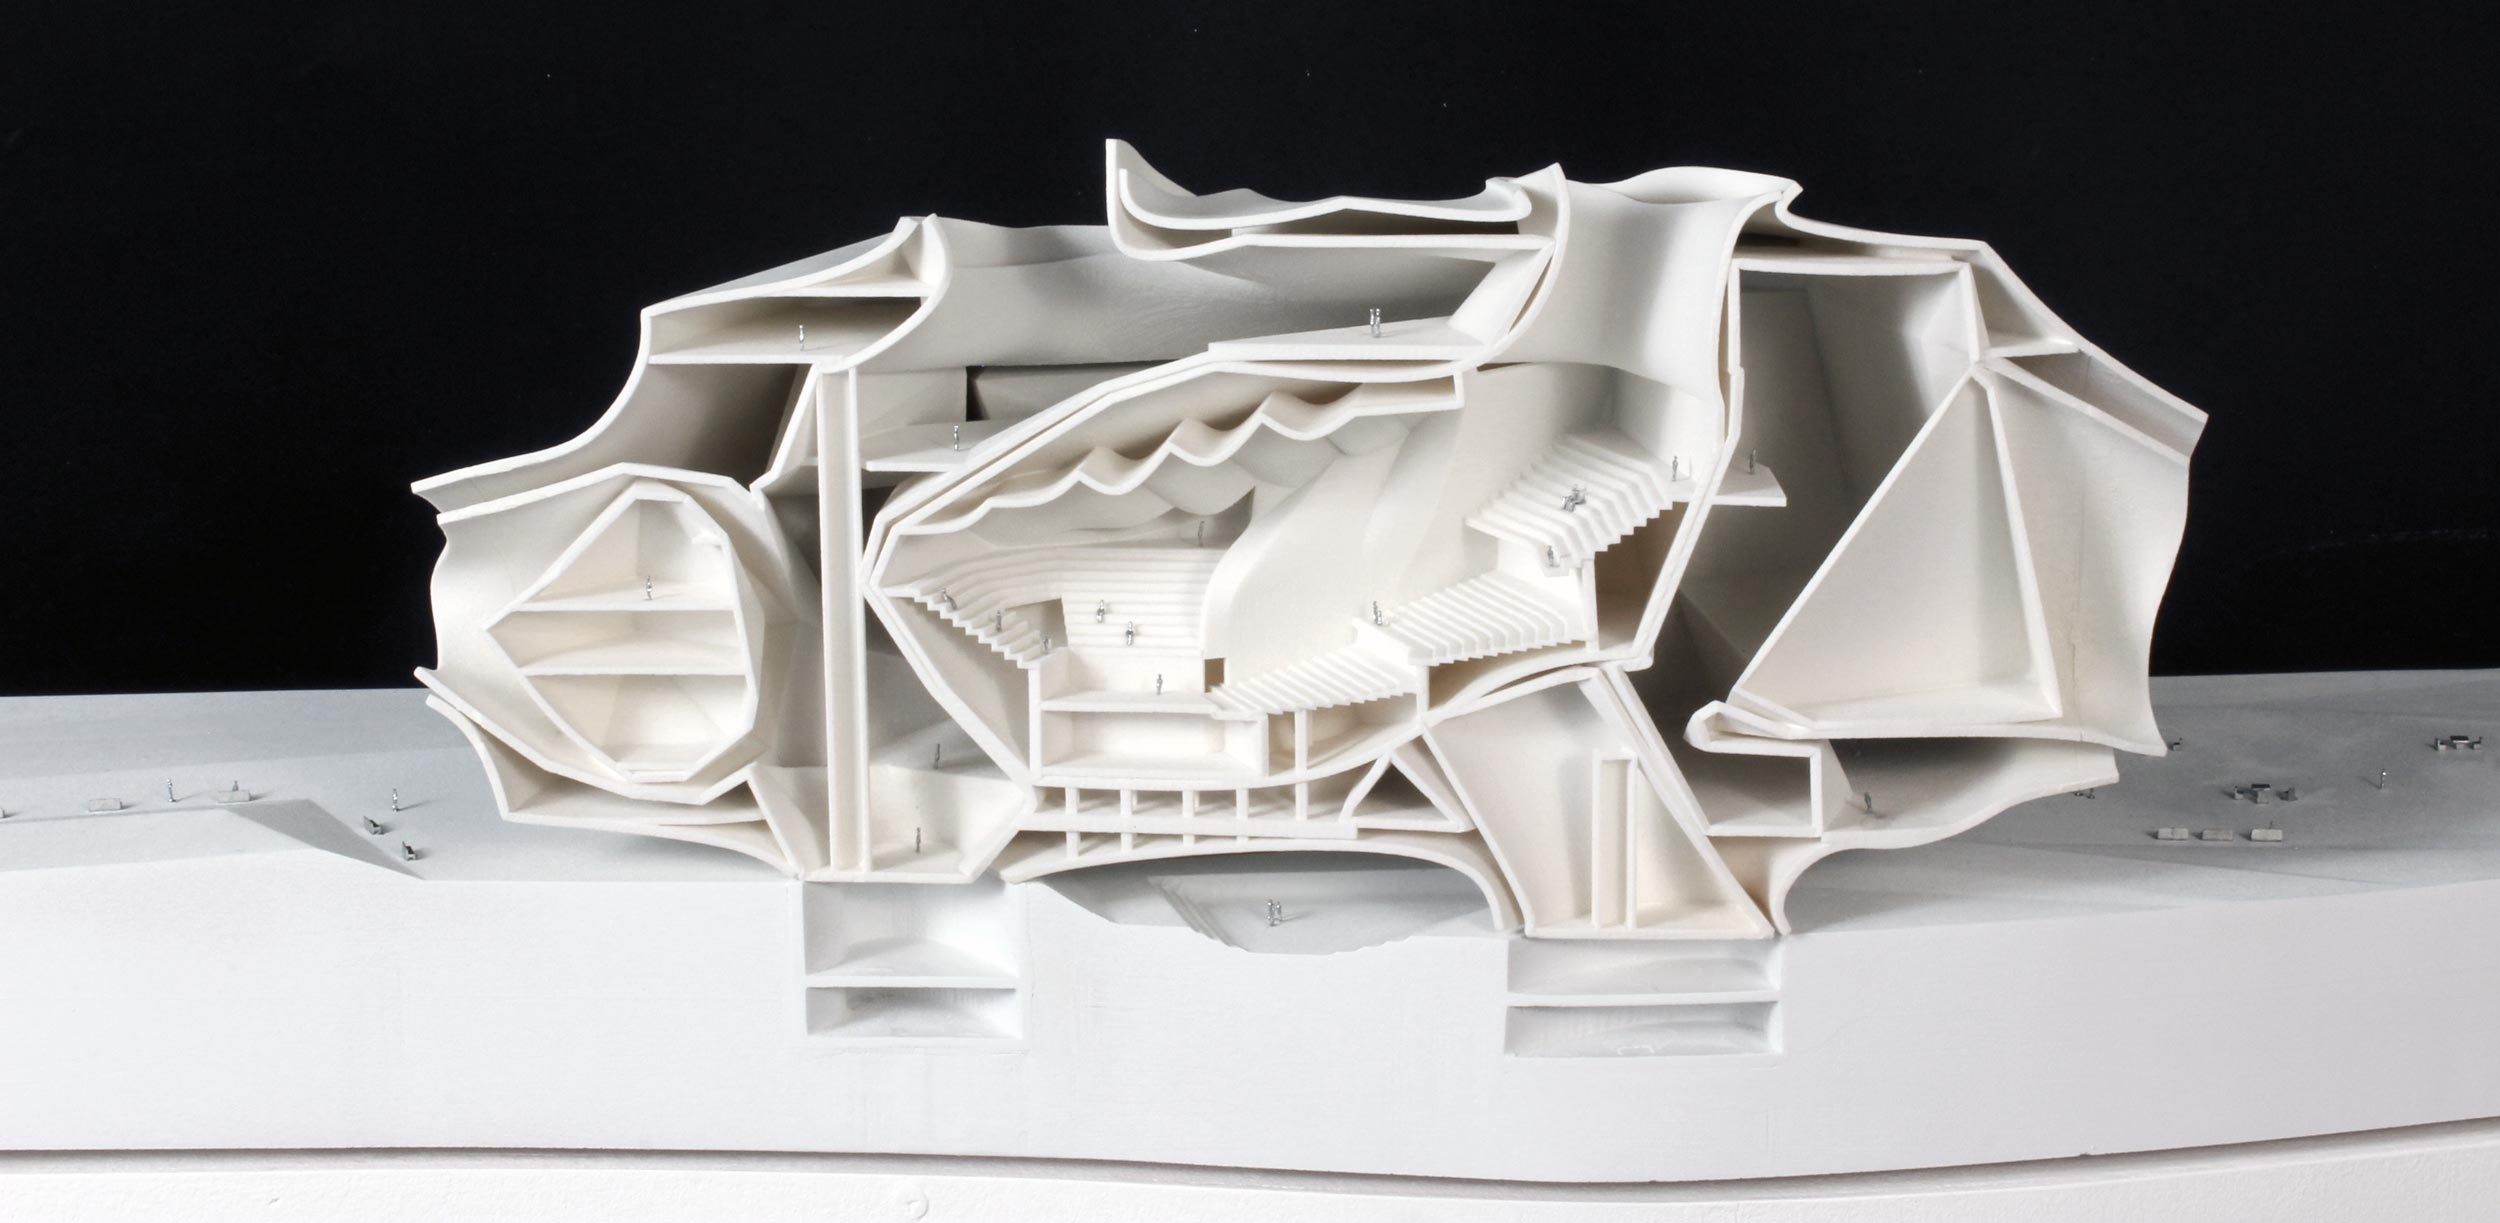 3d printing for architecture and design students lgm 3d model sites